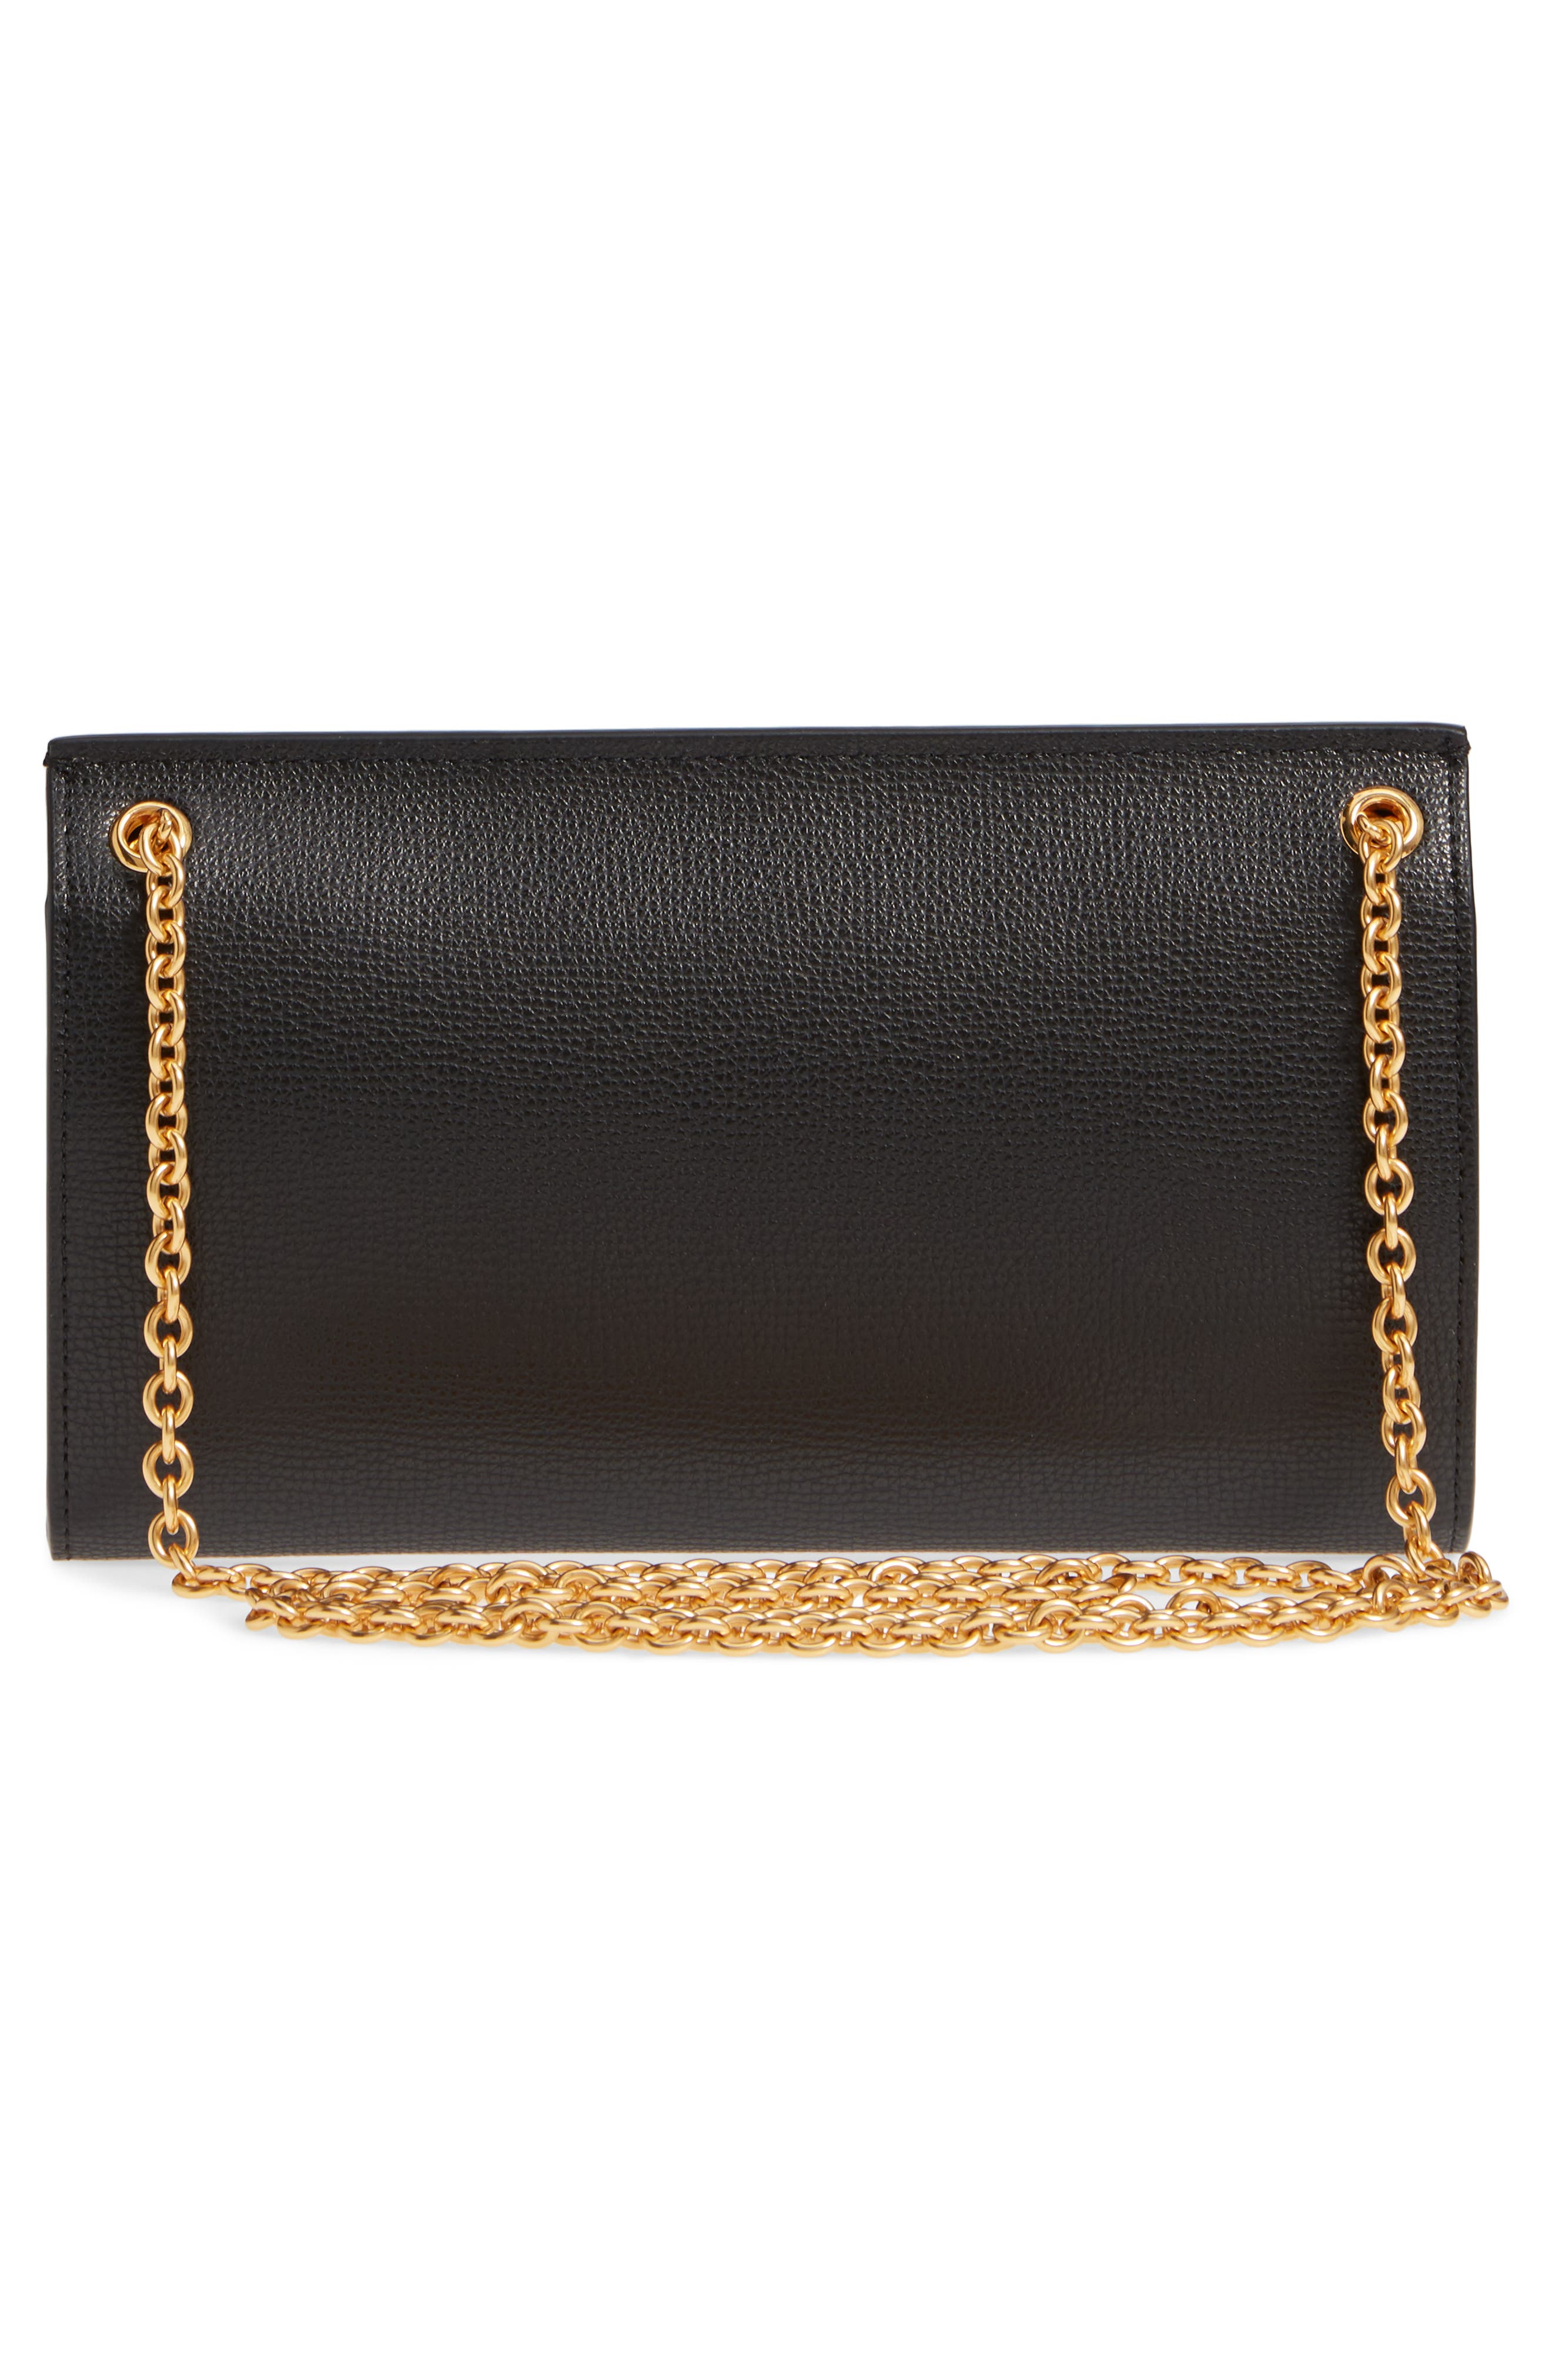 Amberley Calfskin Leather Clutch,                             Alternate thumbnail 3, color,                             Black